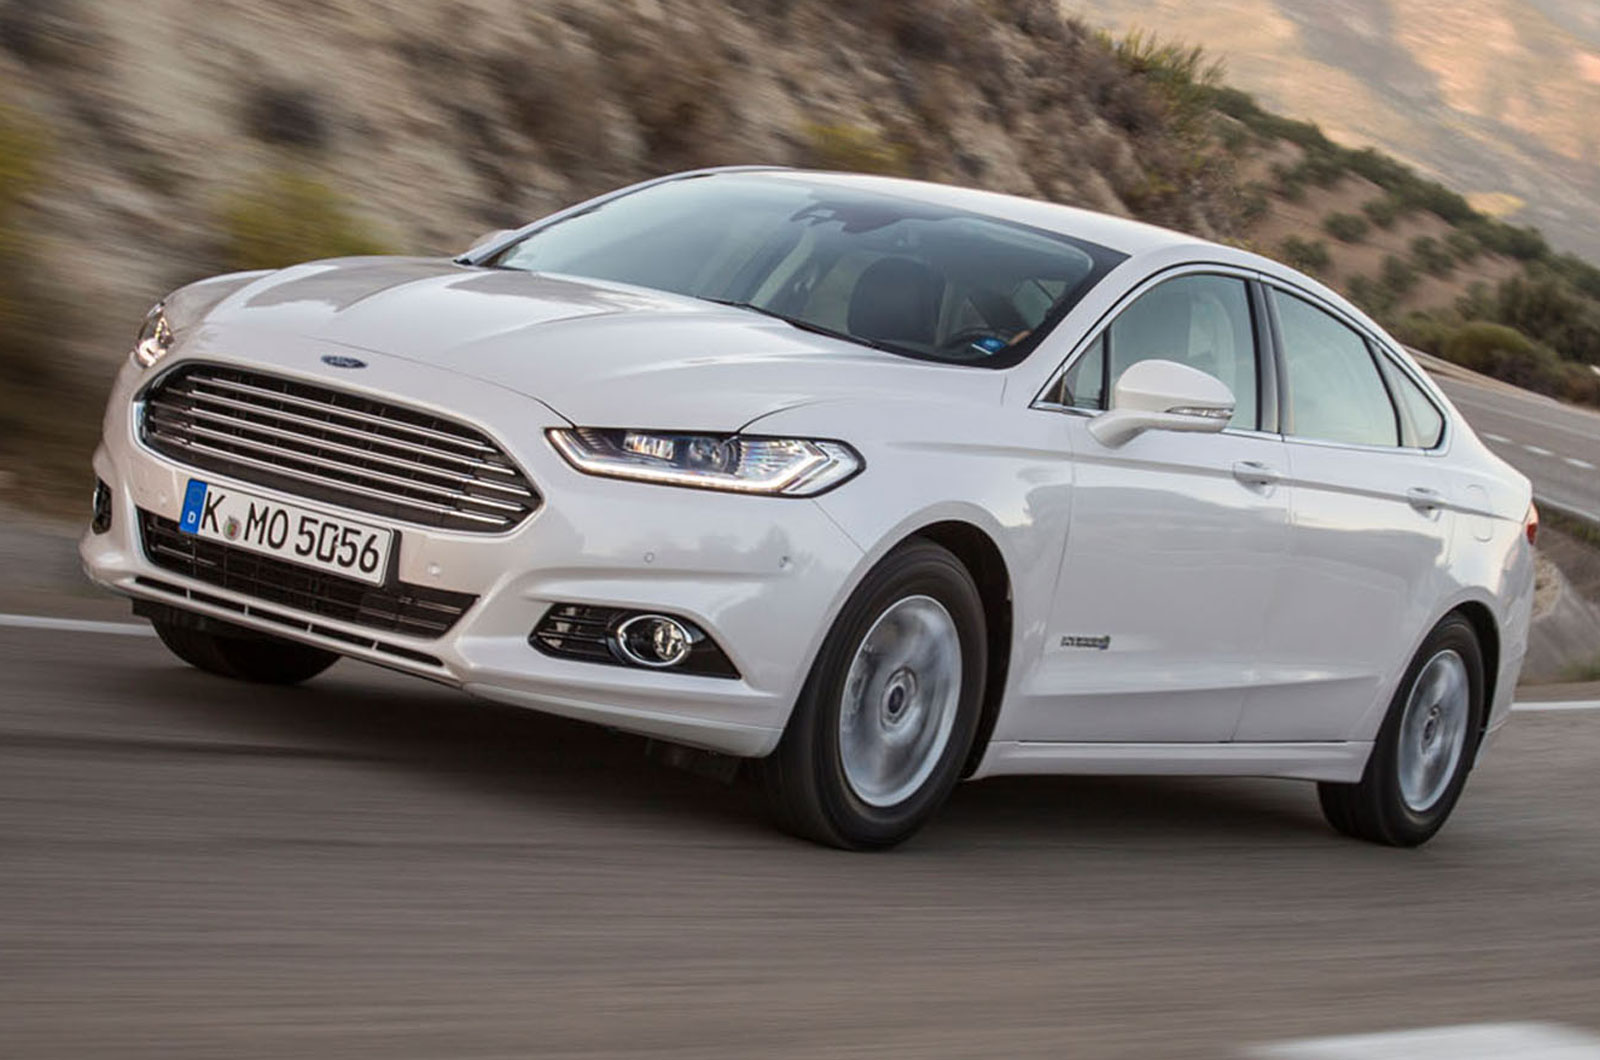 2014 ford mondeo hybrid first drive review autocar. Black Bedroom Furniture Sets. Home Design Ideas